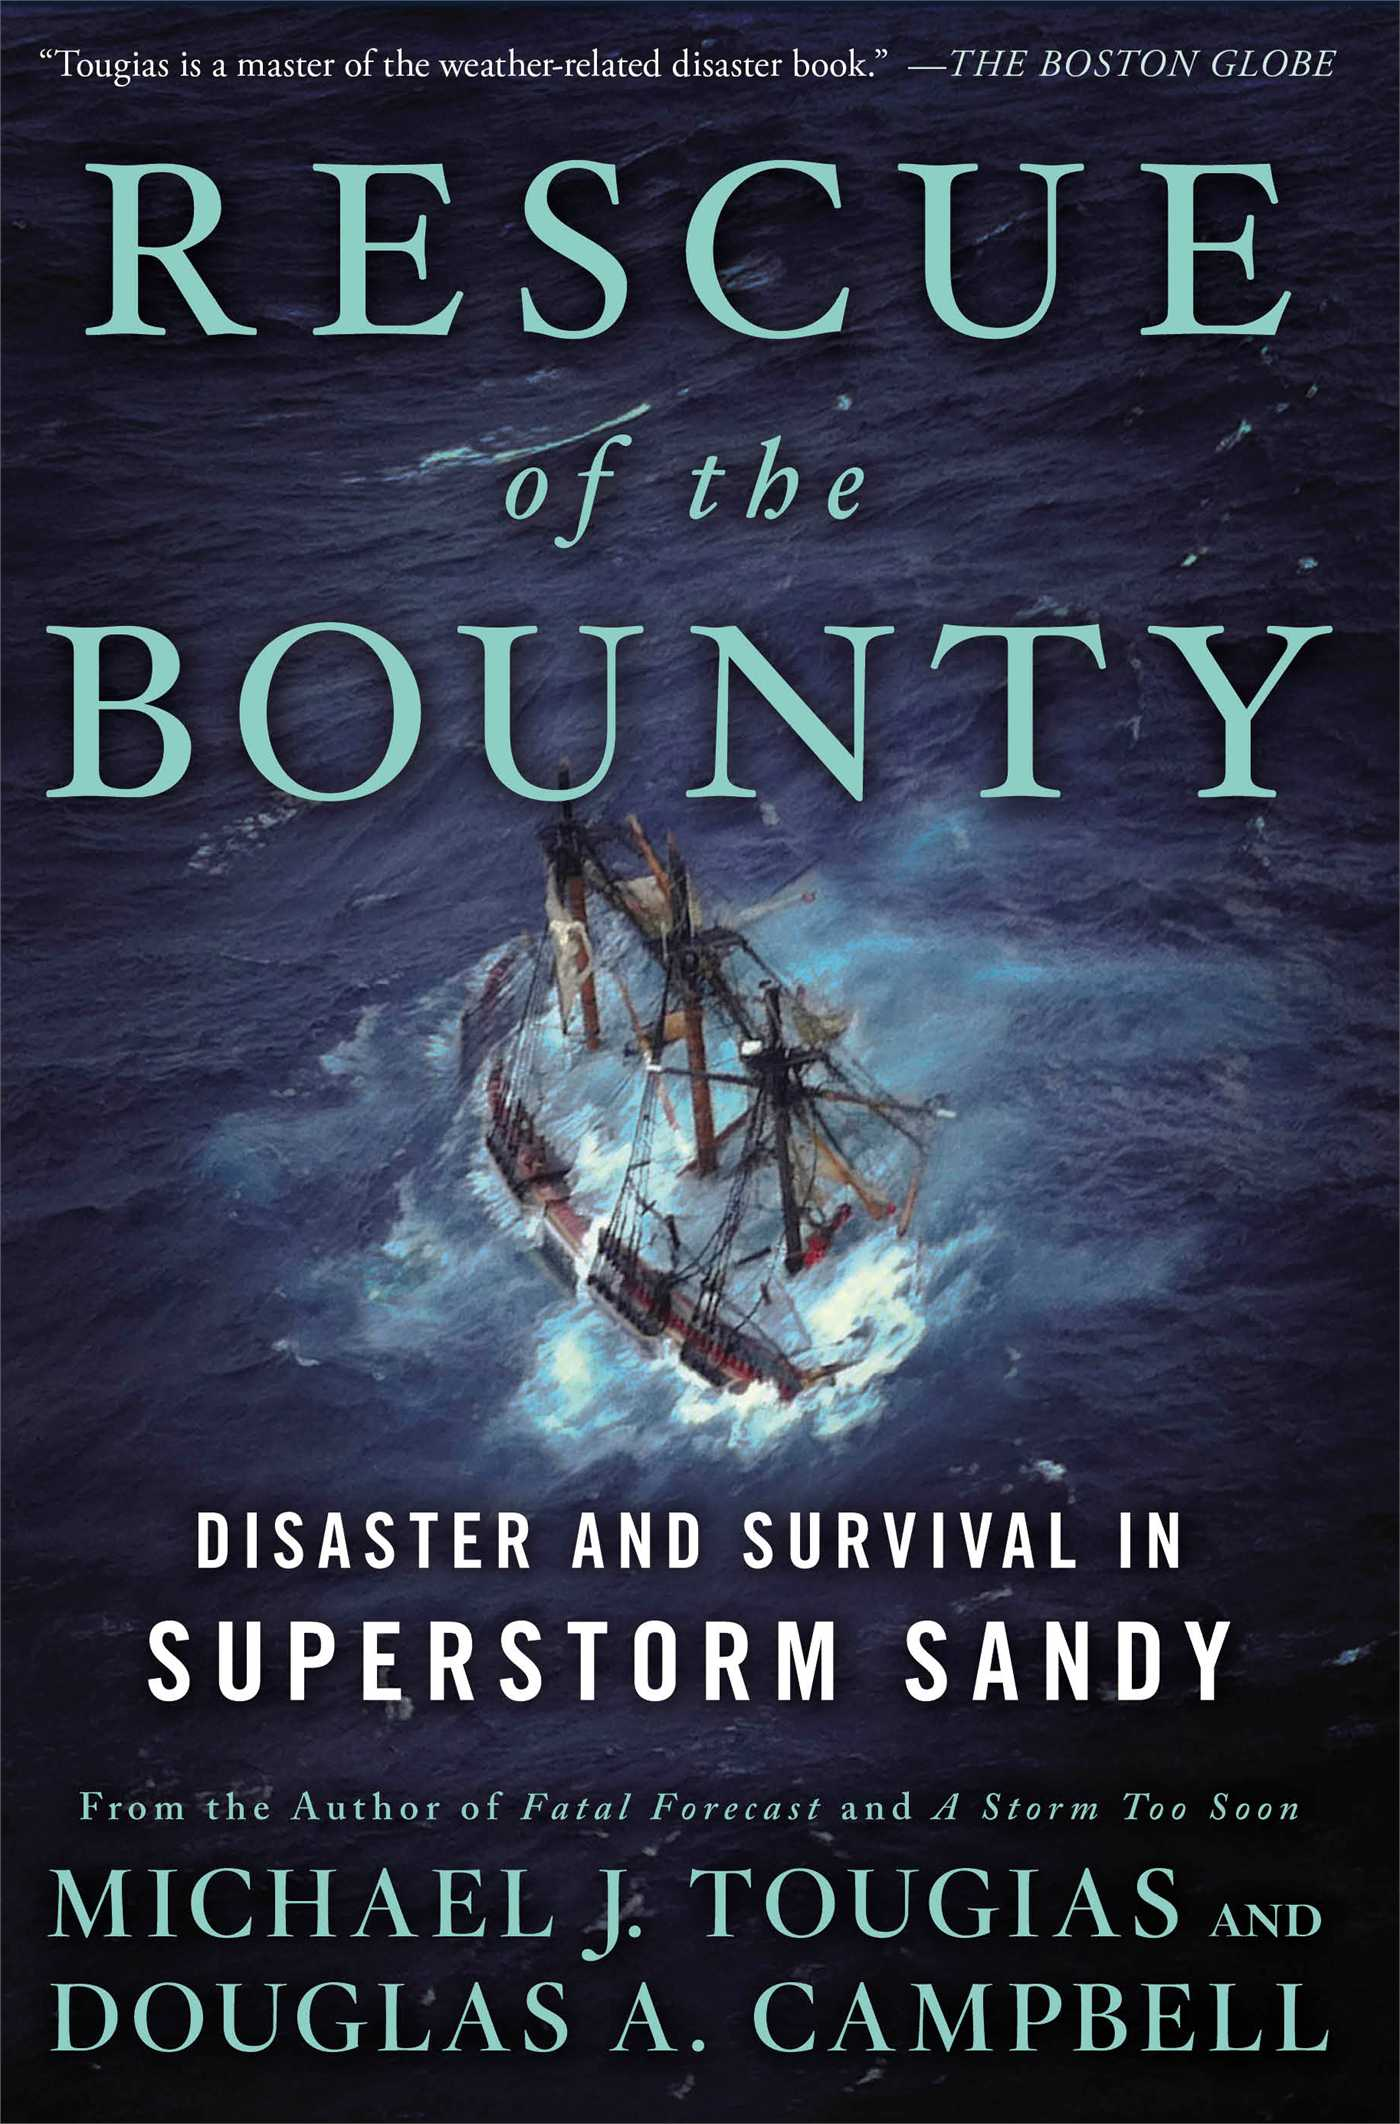 Rescue-of-the-bounty-9781476746630_hr